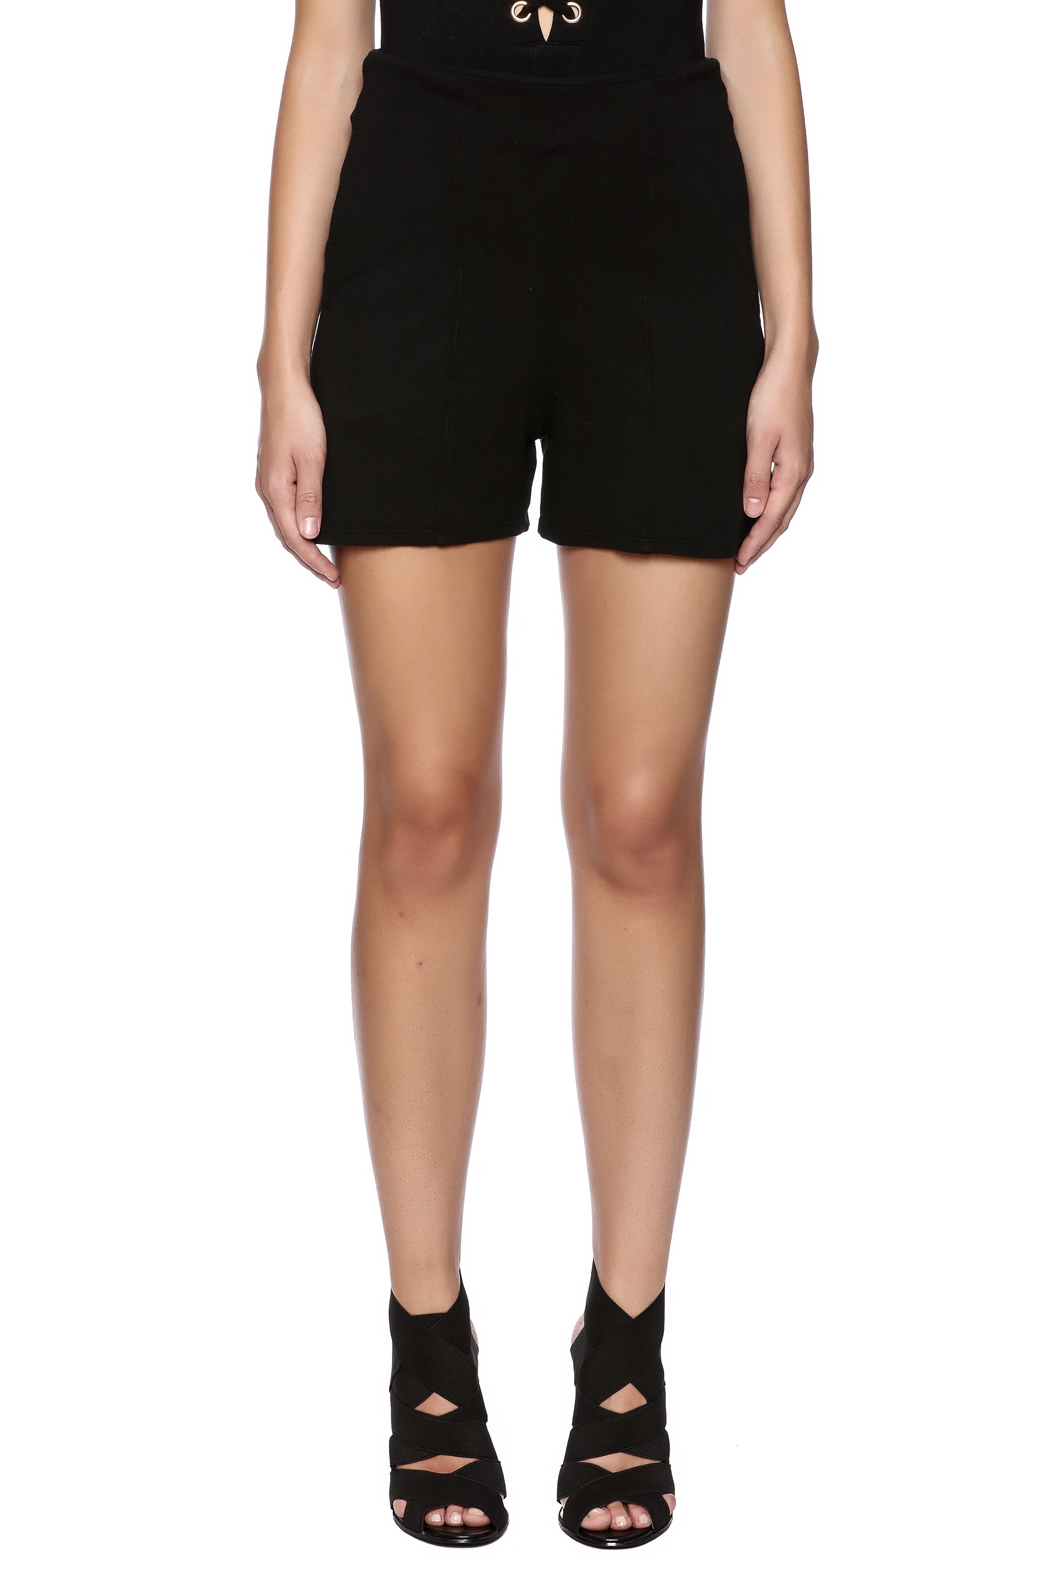 Groceries Apparel Black High Waisted Short - Side Cropped Image